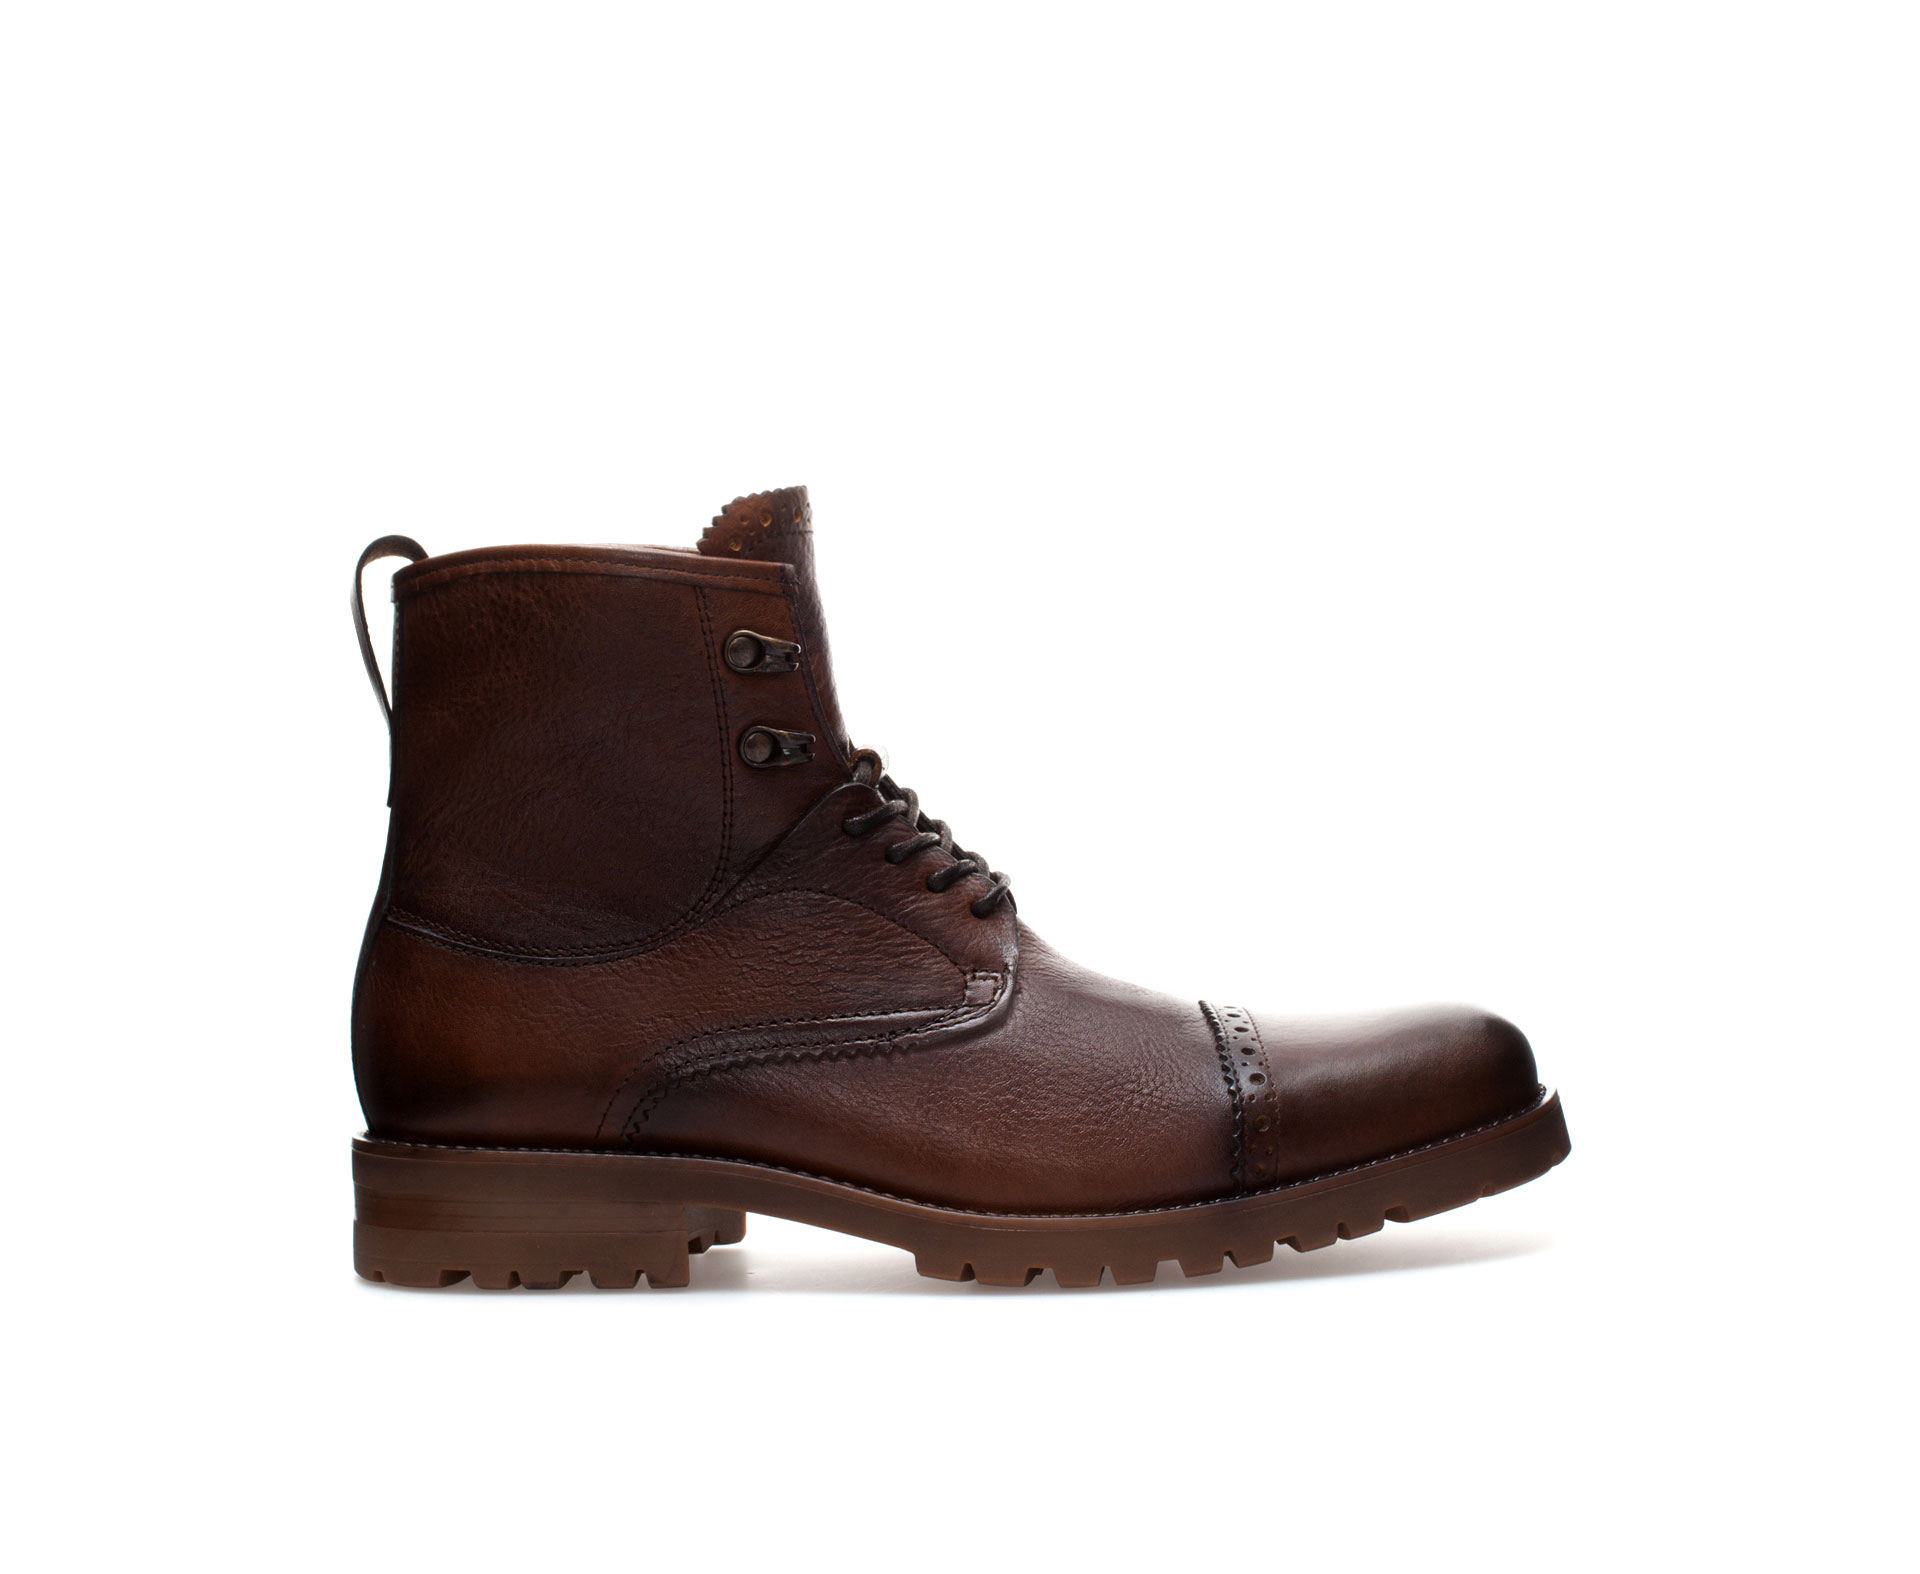 Brown Boots Dress Shoes for Men